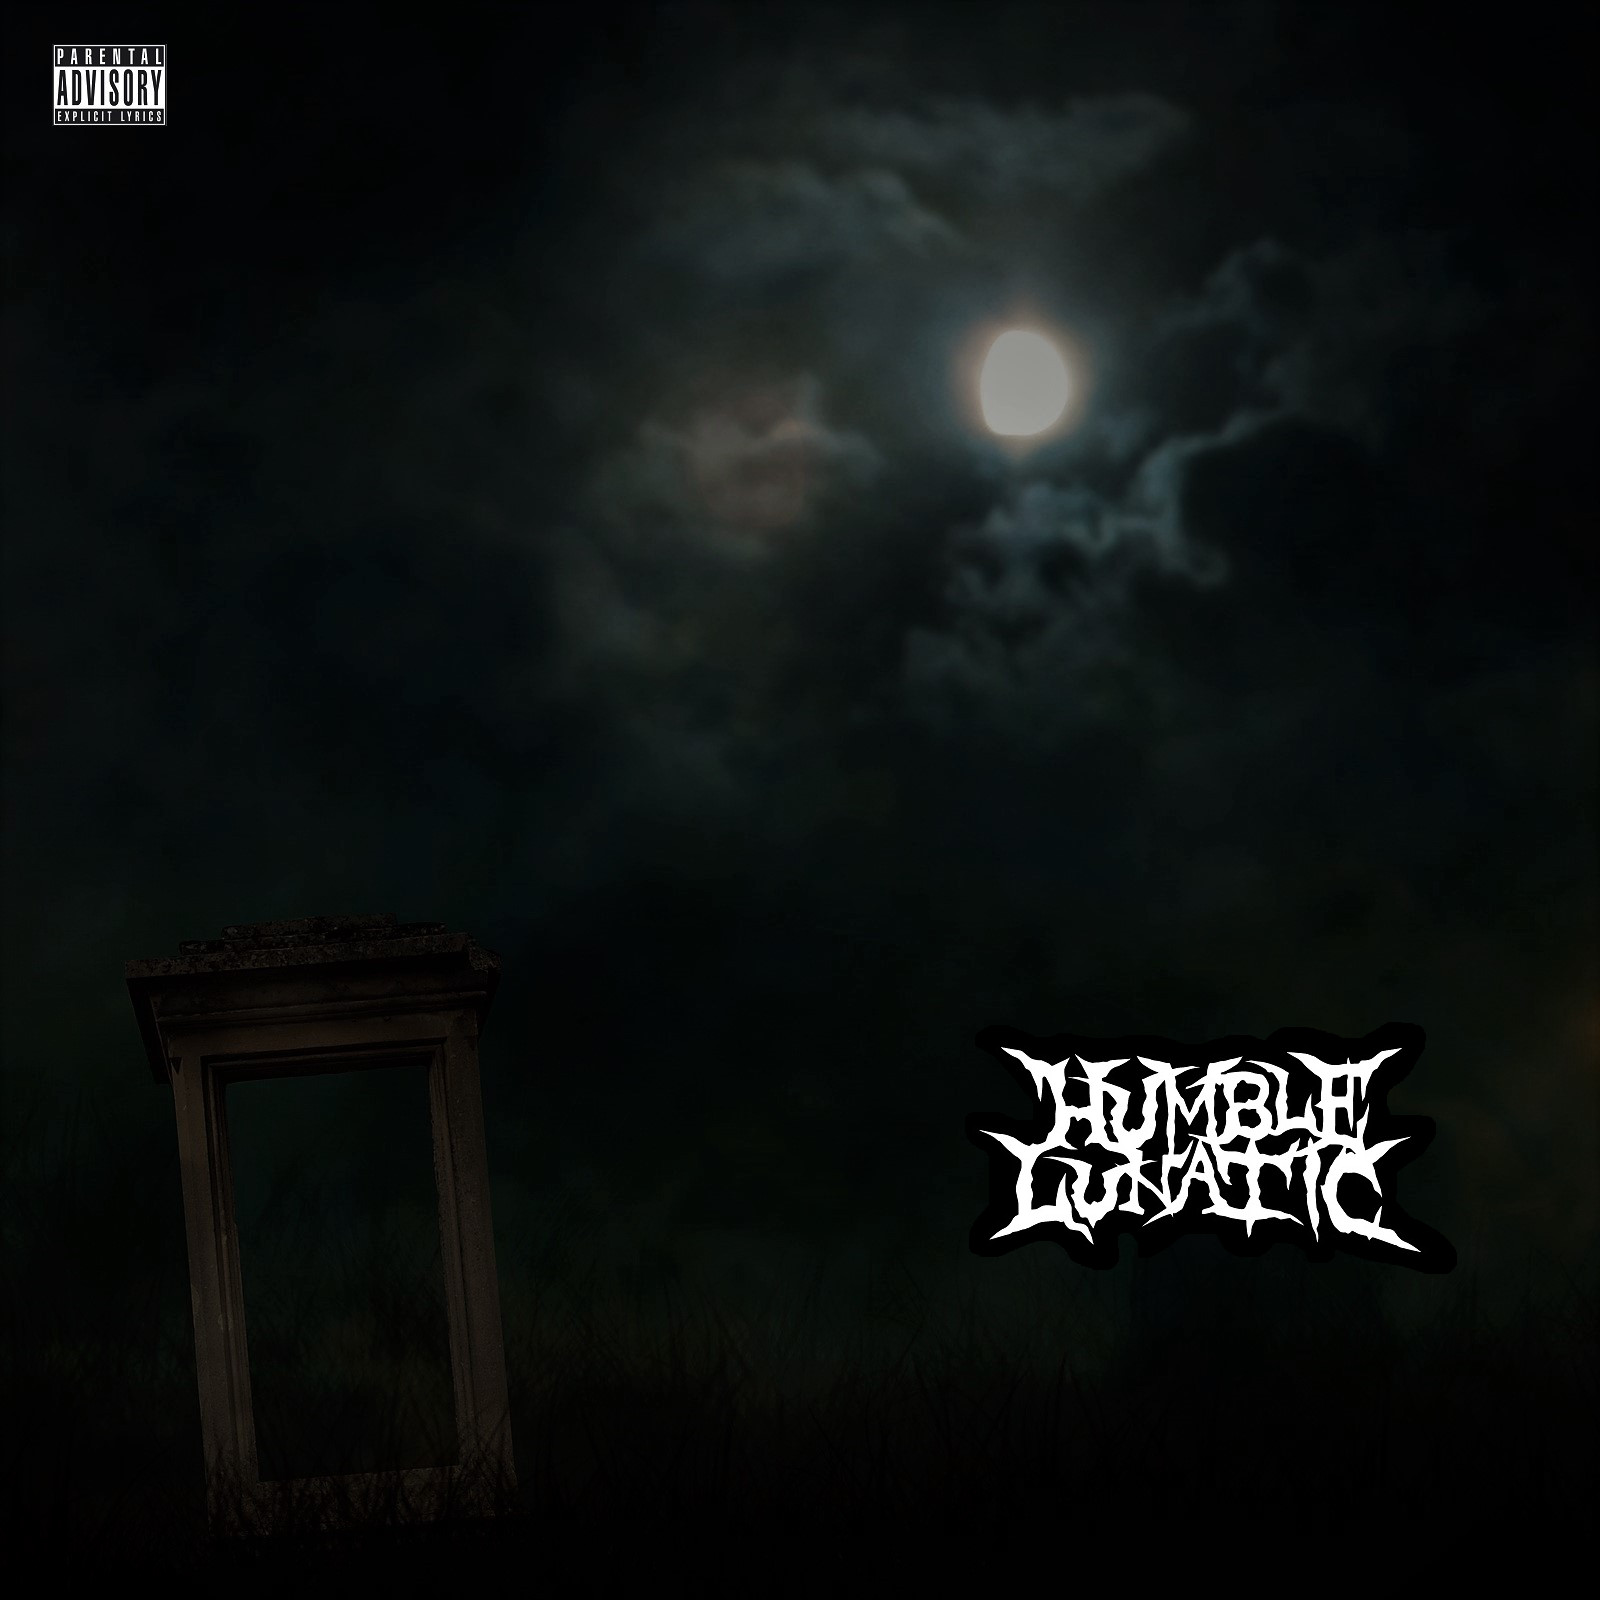 My debut self-titled album HUMBLE LUNATIC is available on iTunes again with a bit of a revamp